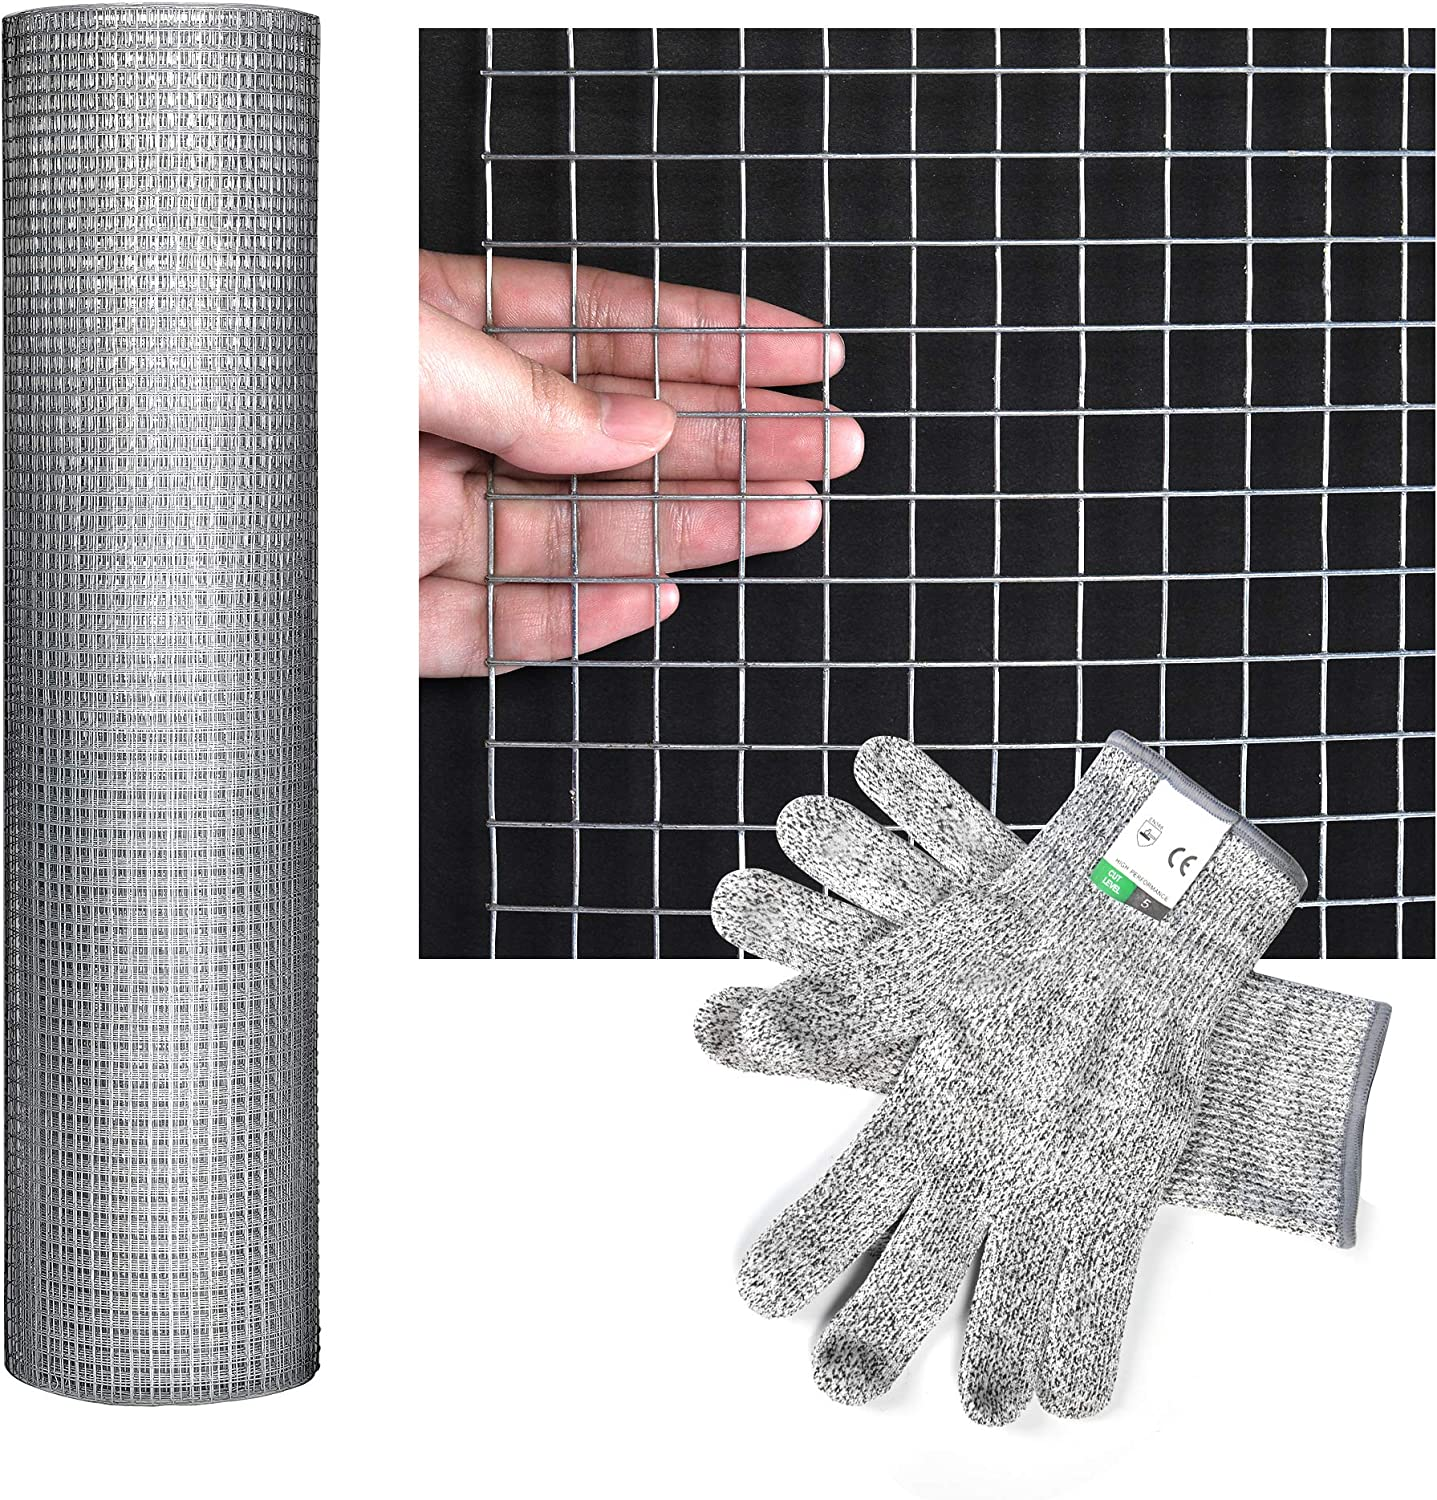 Hardware Cloth - 48'' x 40' Welded Cage Wire Chicken Fence mesh, 1/2 inch Square 19 Gauge Galvanized Wire mesh Welded Wire, Fence mesh for Chicken Coop, Gutter Guard, Animal Control and Garden Use